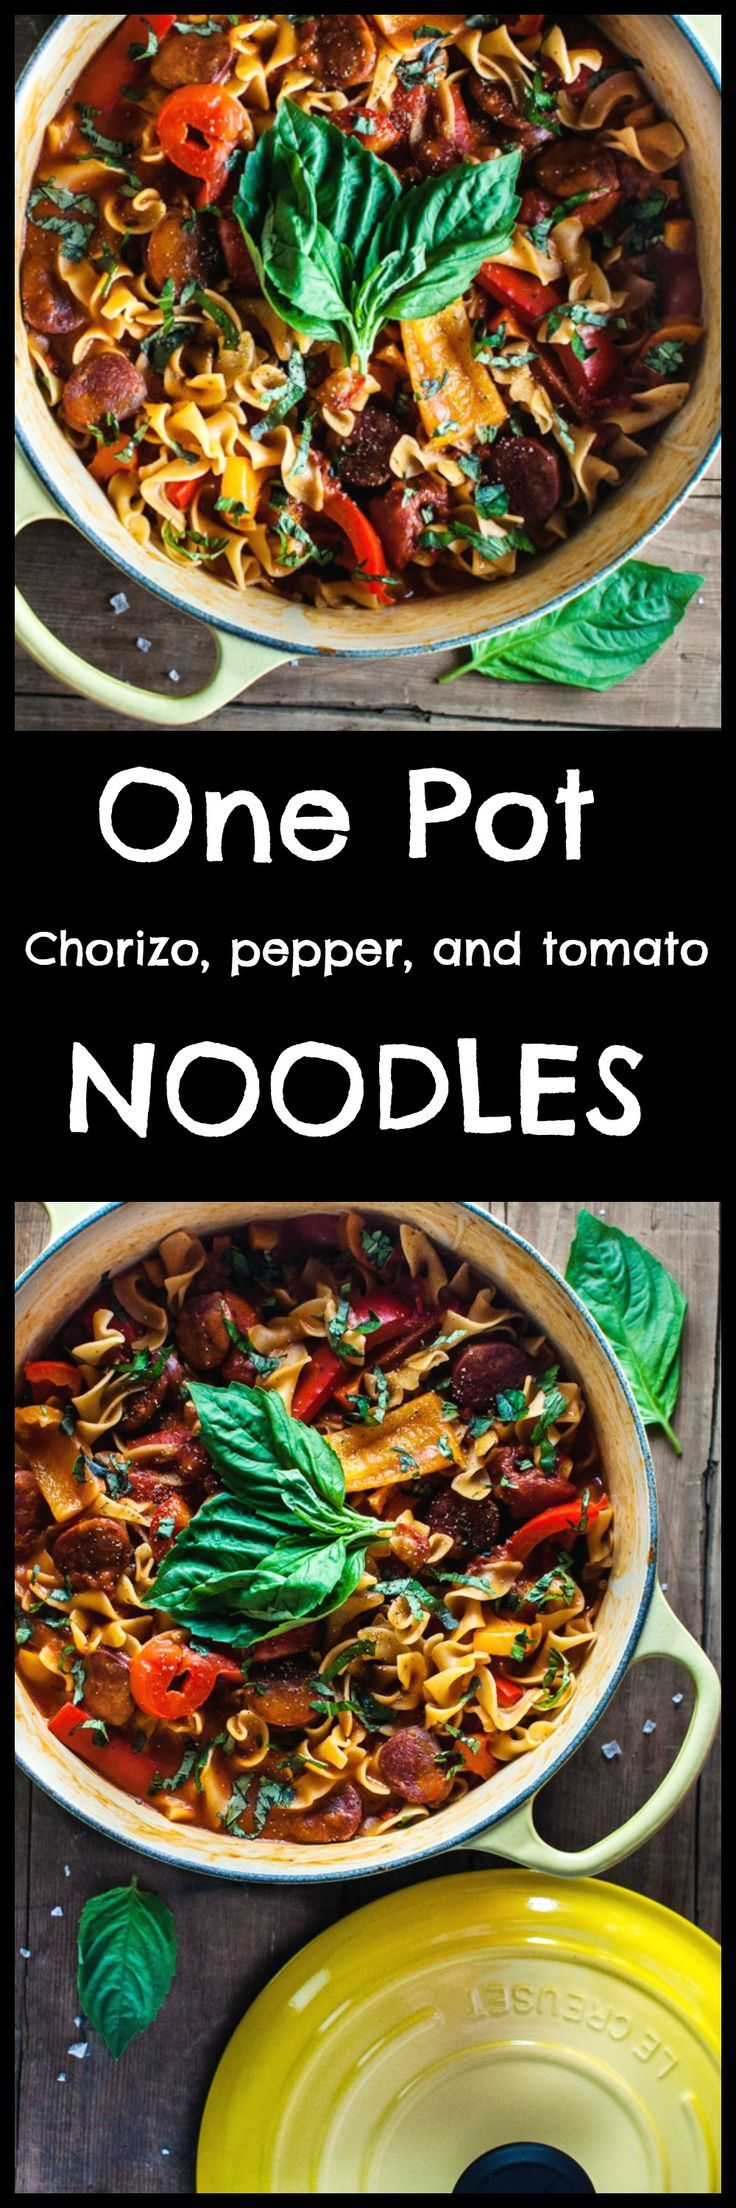 This one pot chorizo, bell pepper, and tomato noodles recipe is quick, healthy, and delicious. One pot = easy clean-up on a busy weeknight. The smoky chorizo makes the sauce taste amazing. Pin for later :)